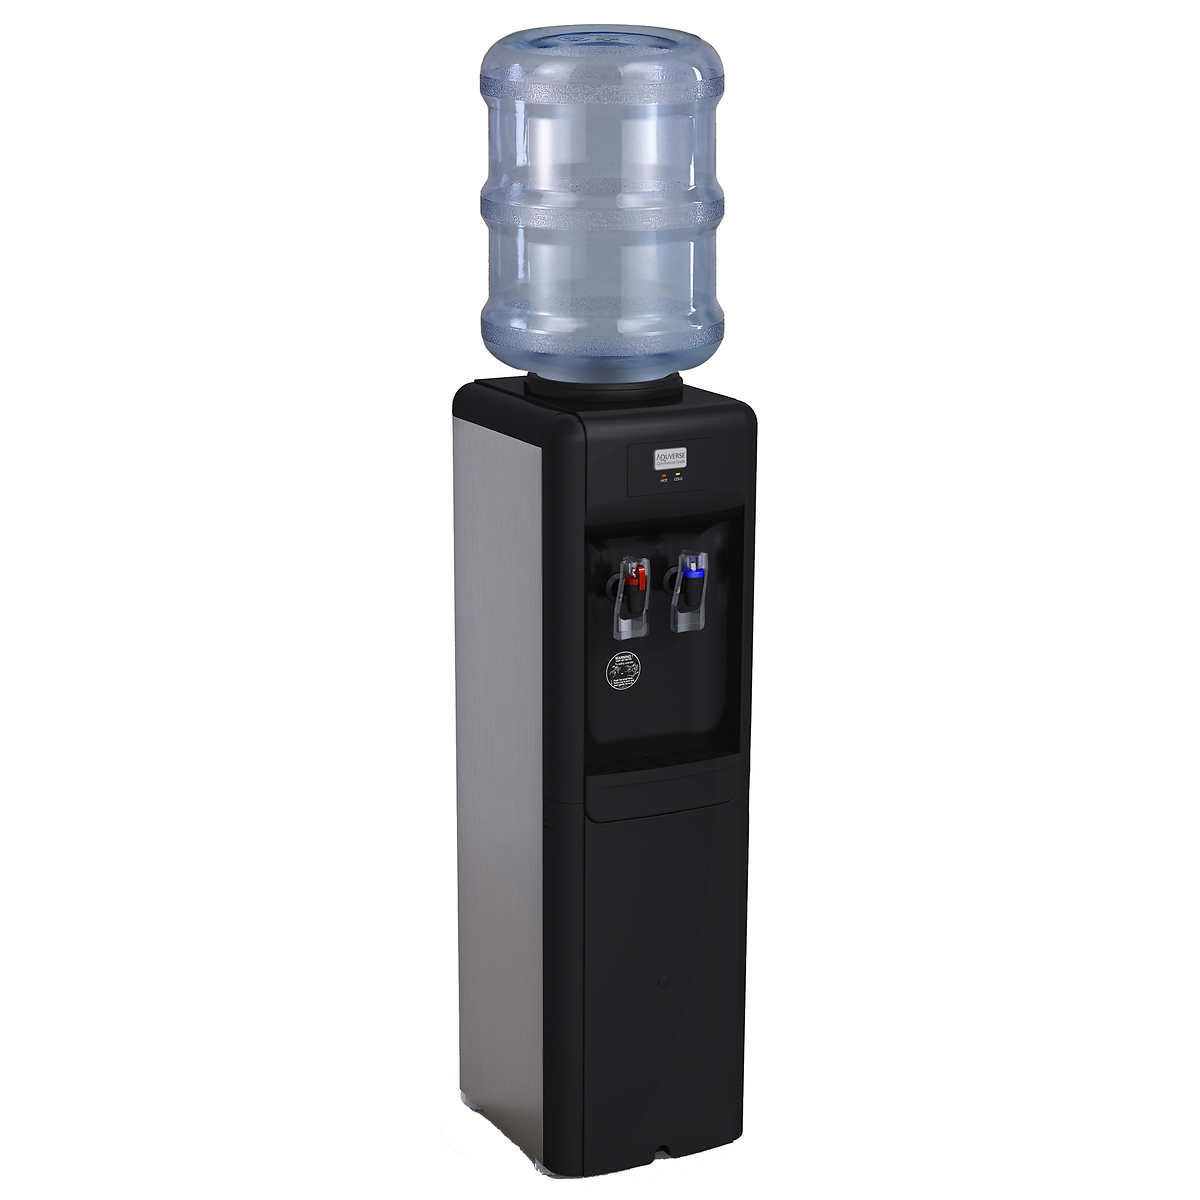 Aquverse 5h Commercial Grade Stainless Steel Top Load Water Dispenser